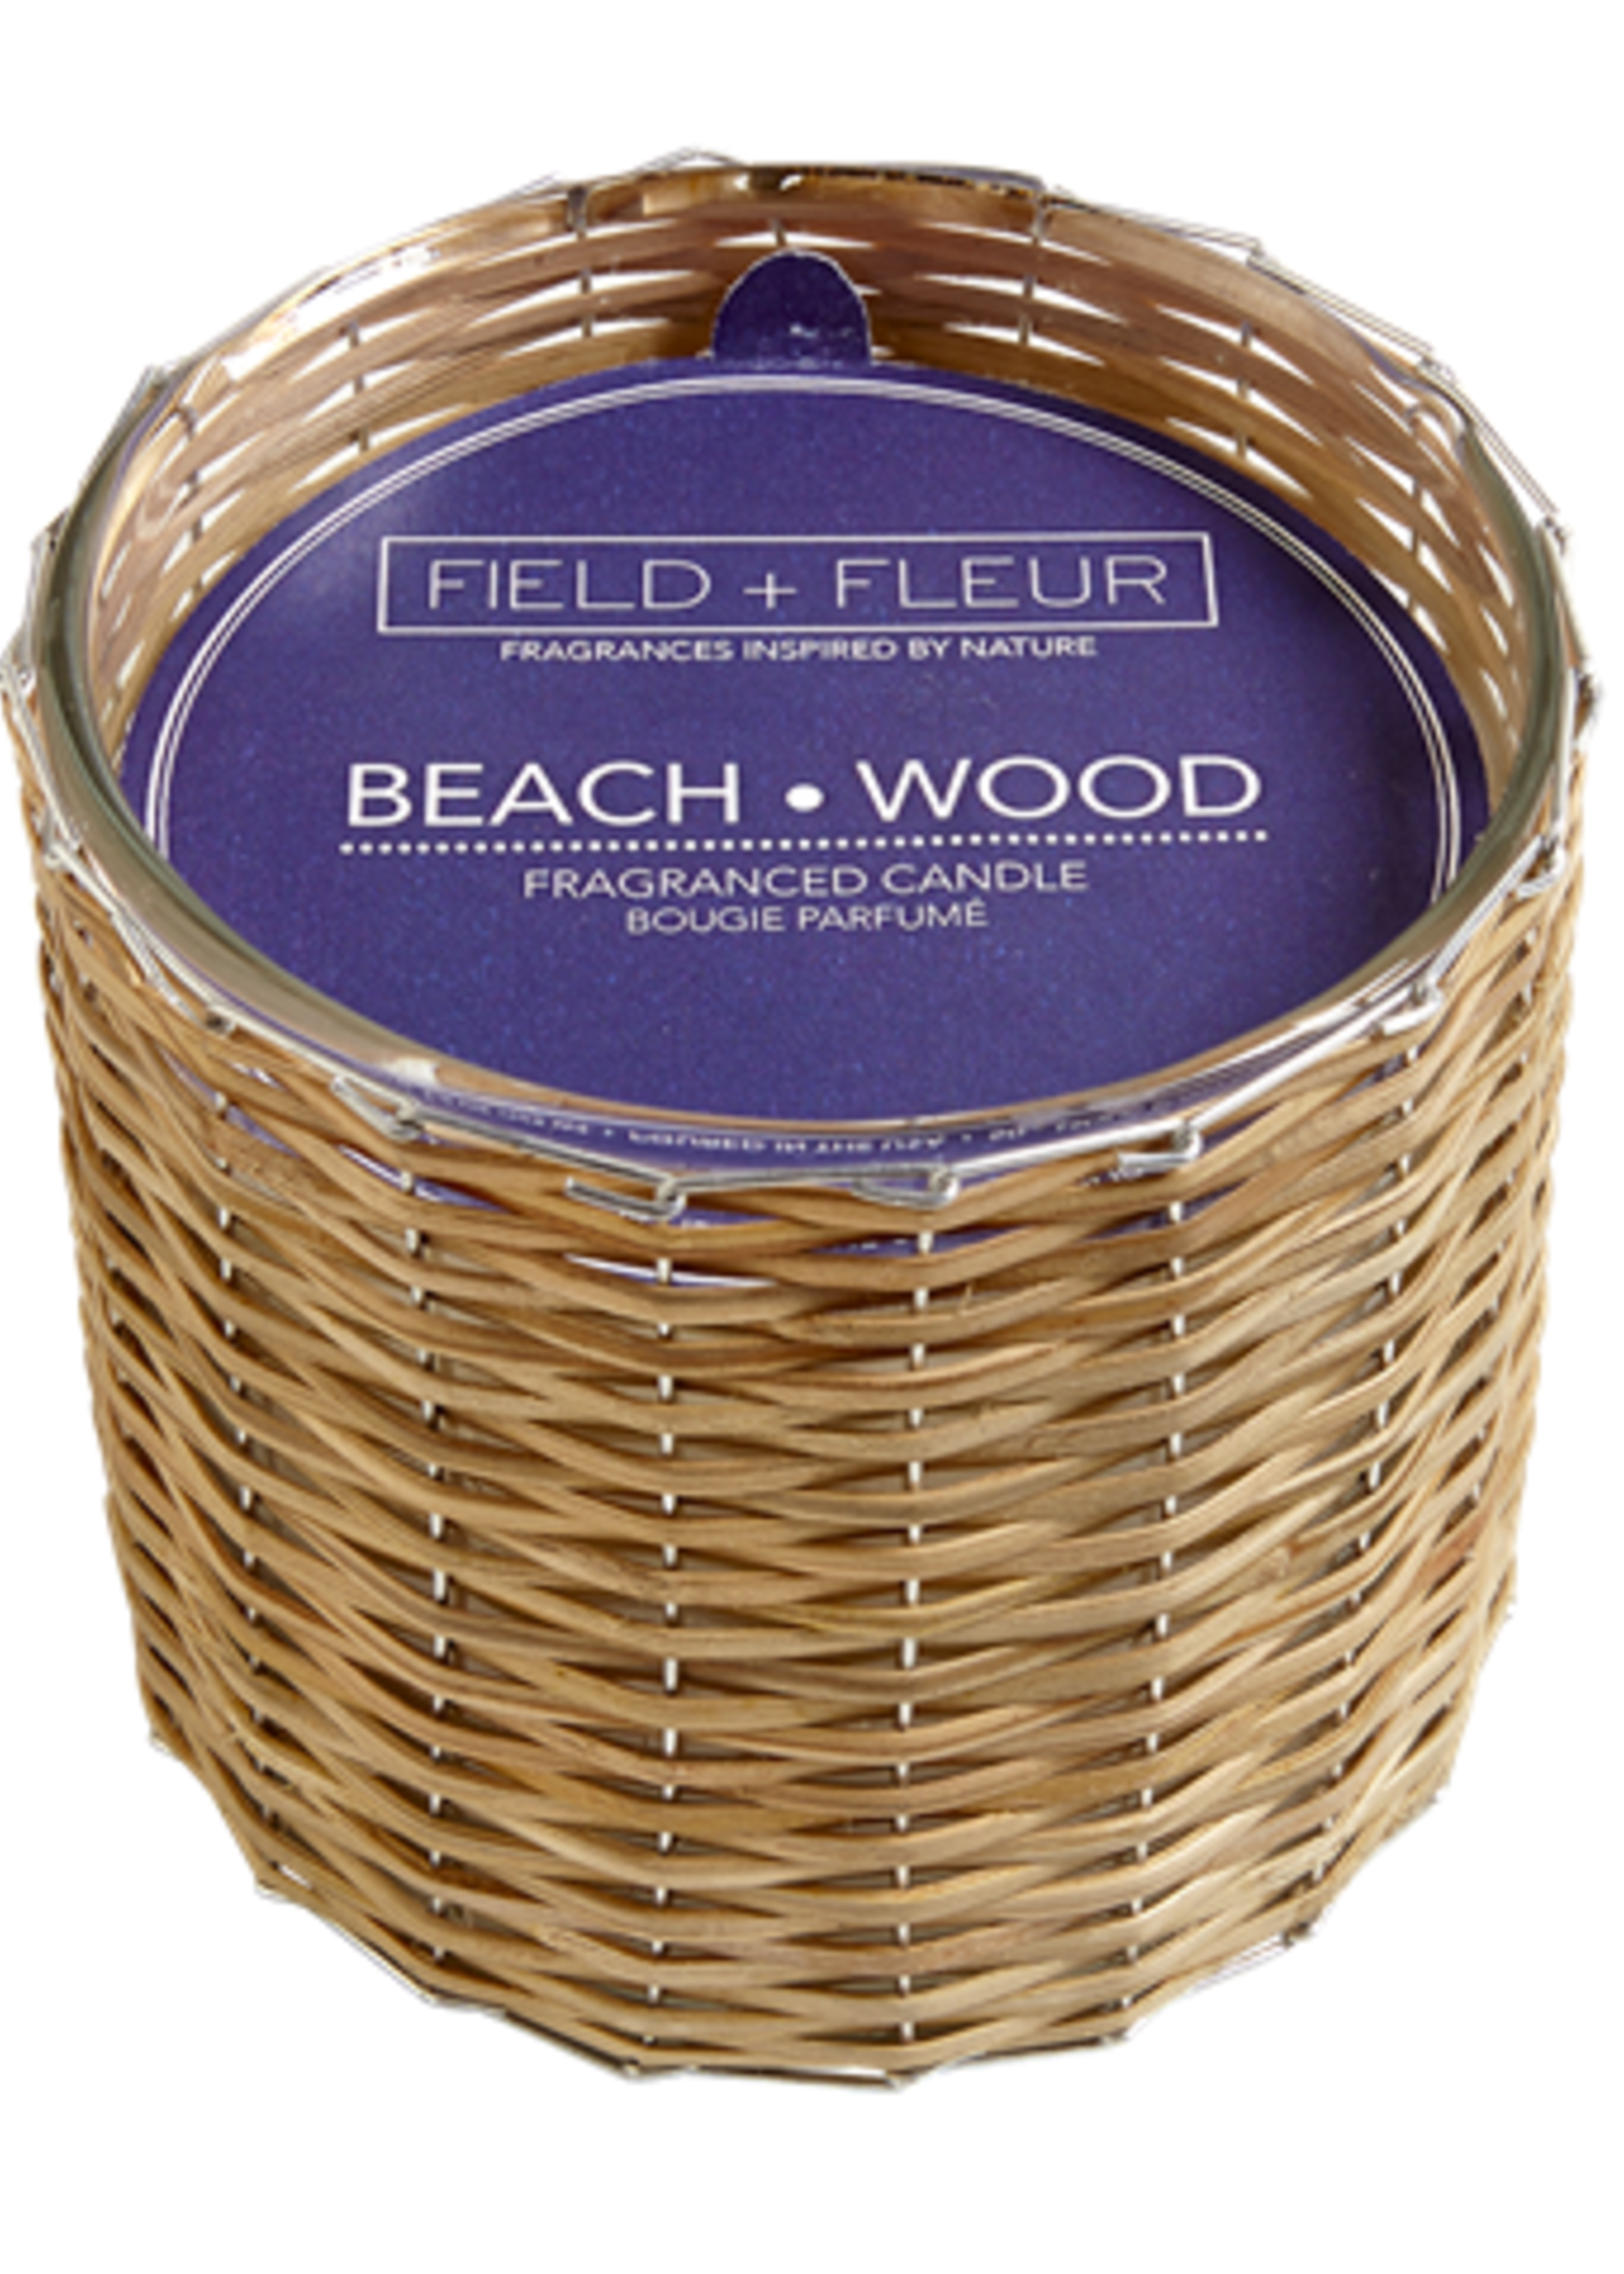 Hillhouse Naturals Beach Wood 2 Wick Handwoven Candle